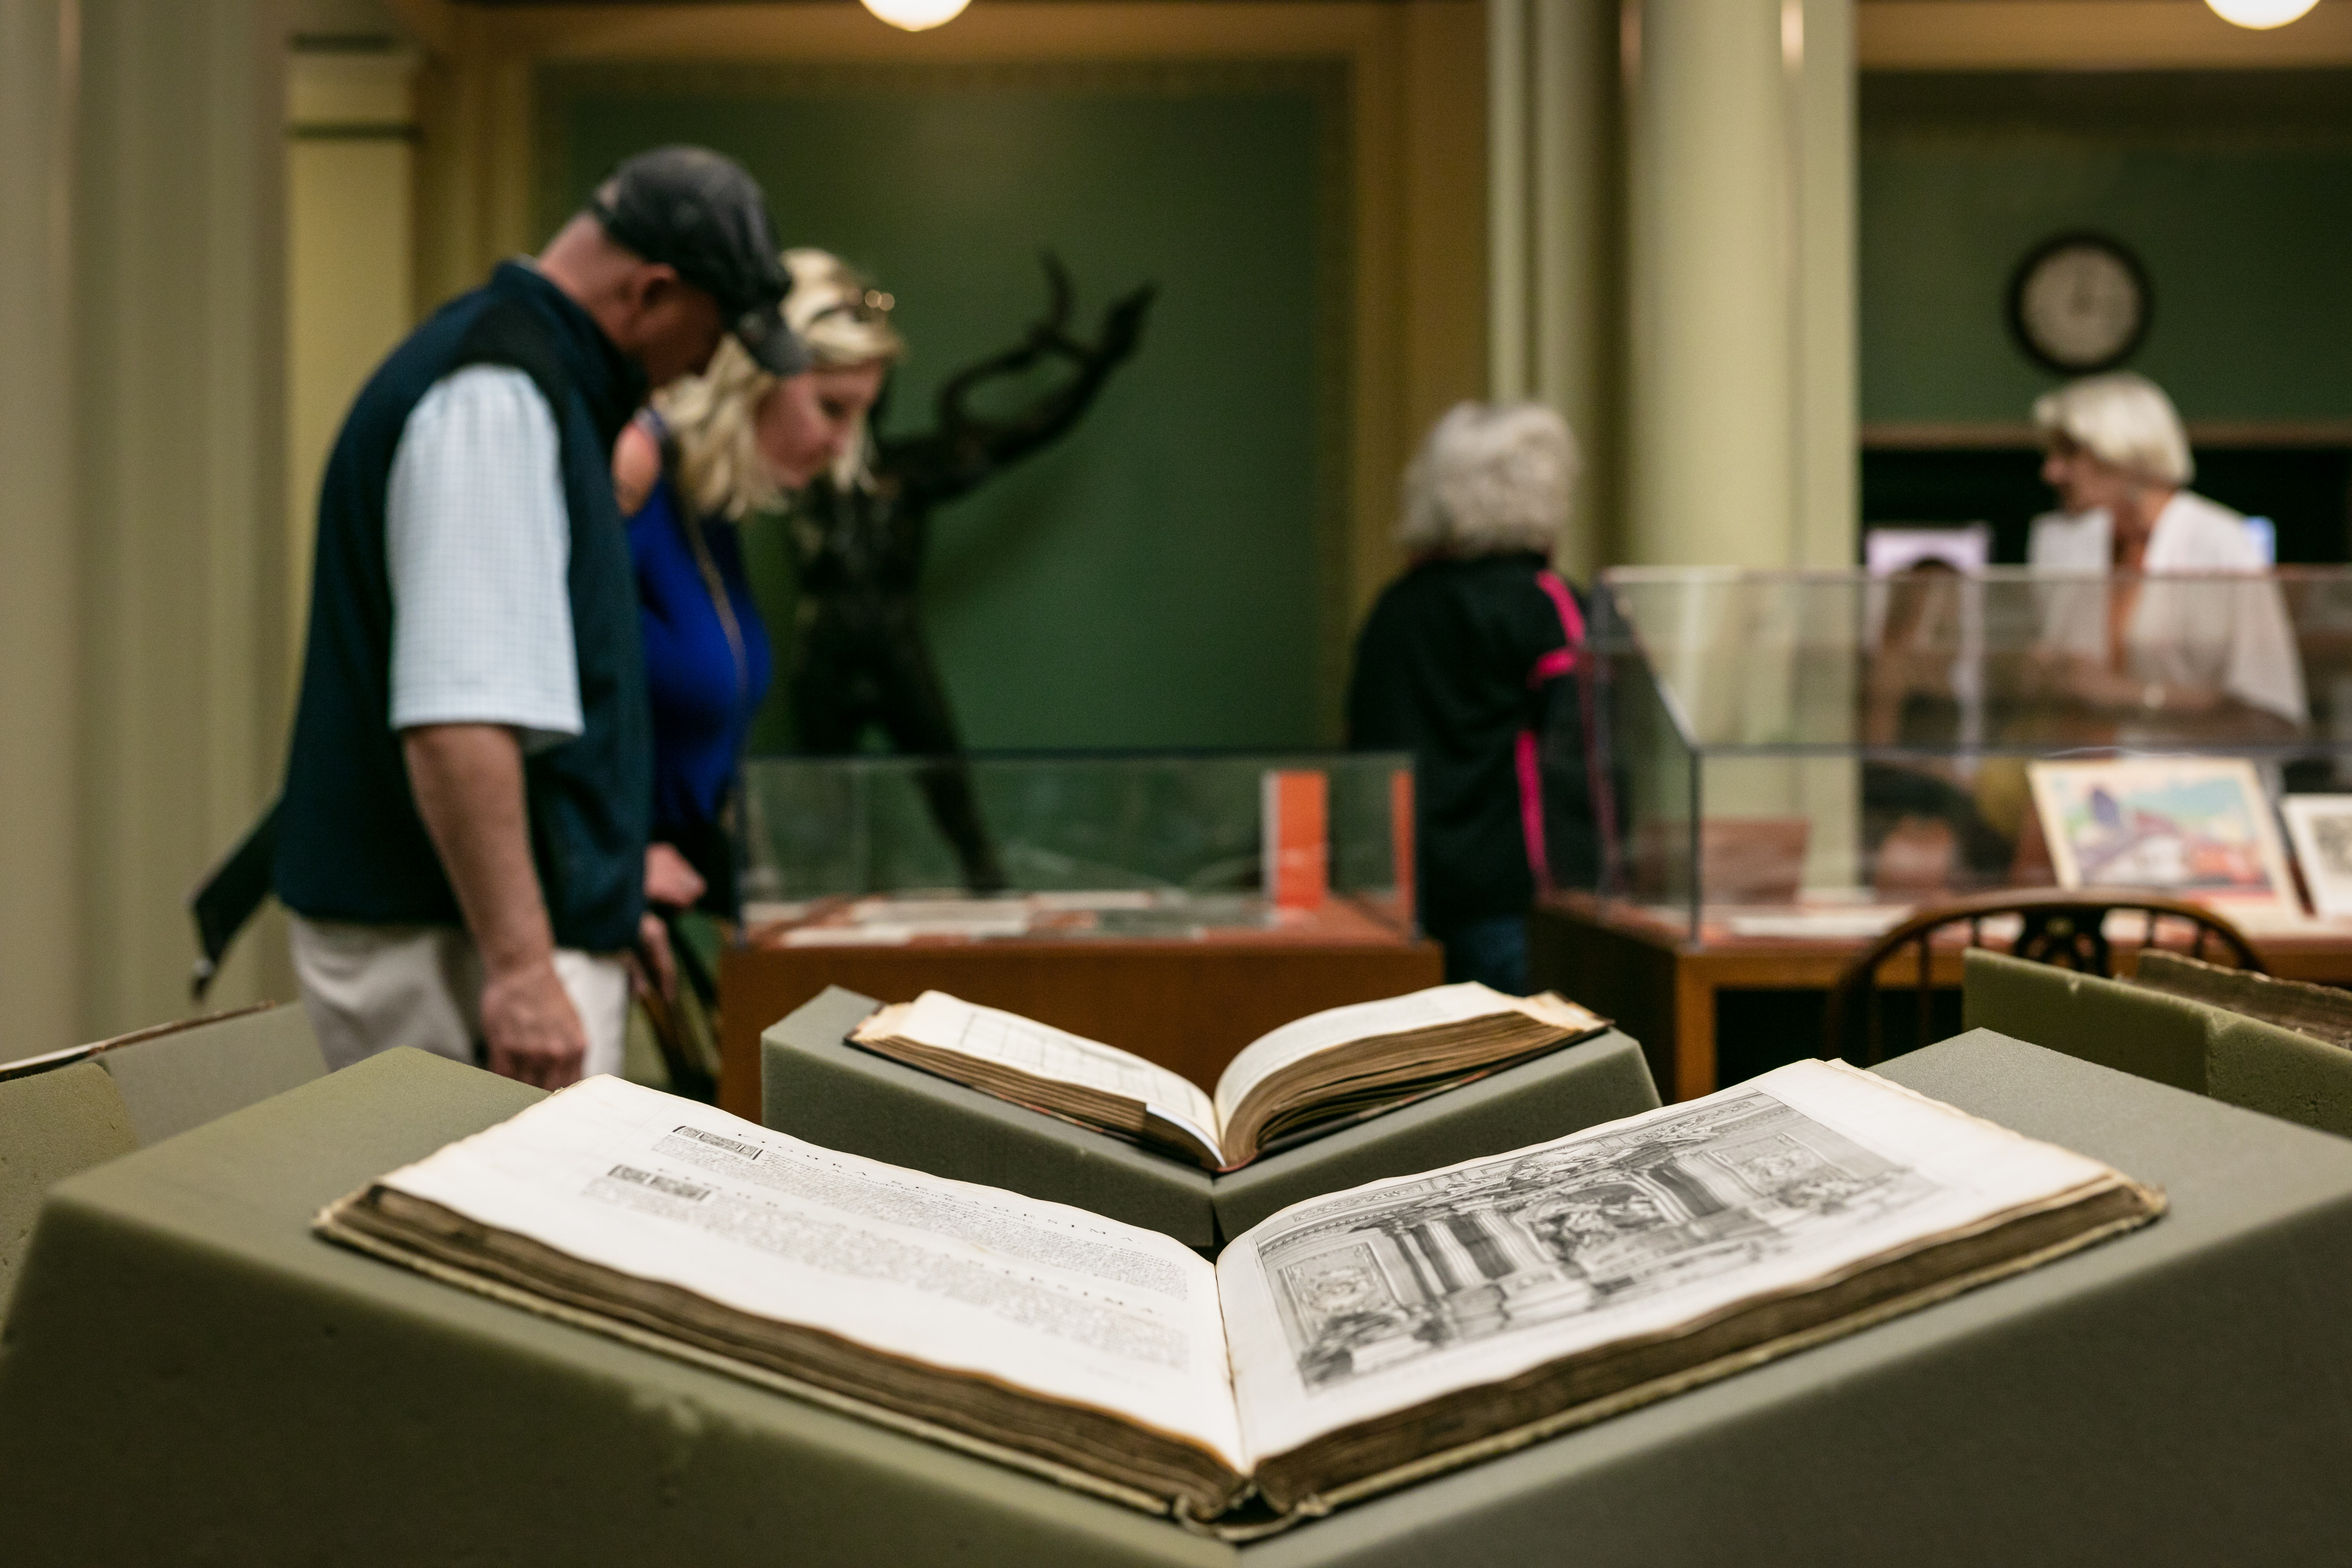 Two books from the special collection of the Library are displayed for visitors.